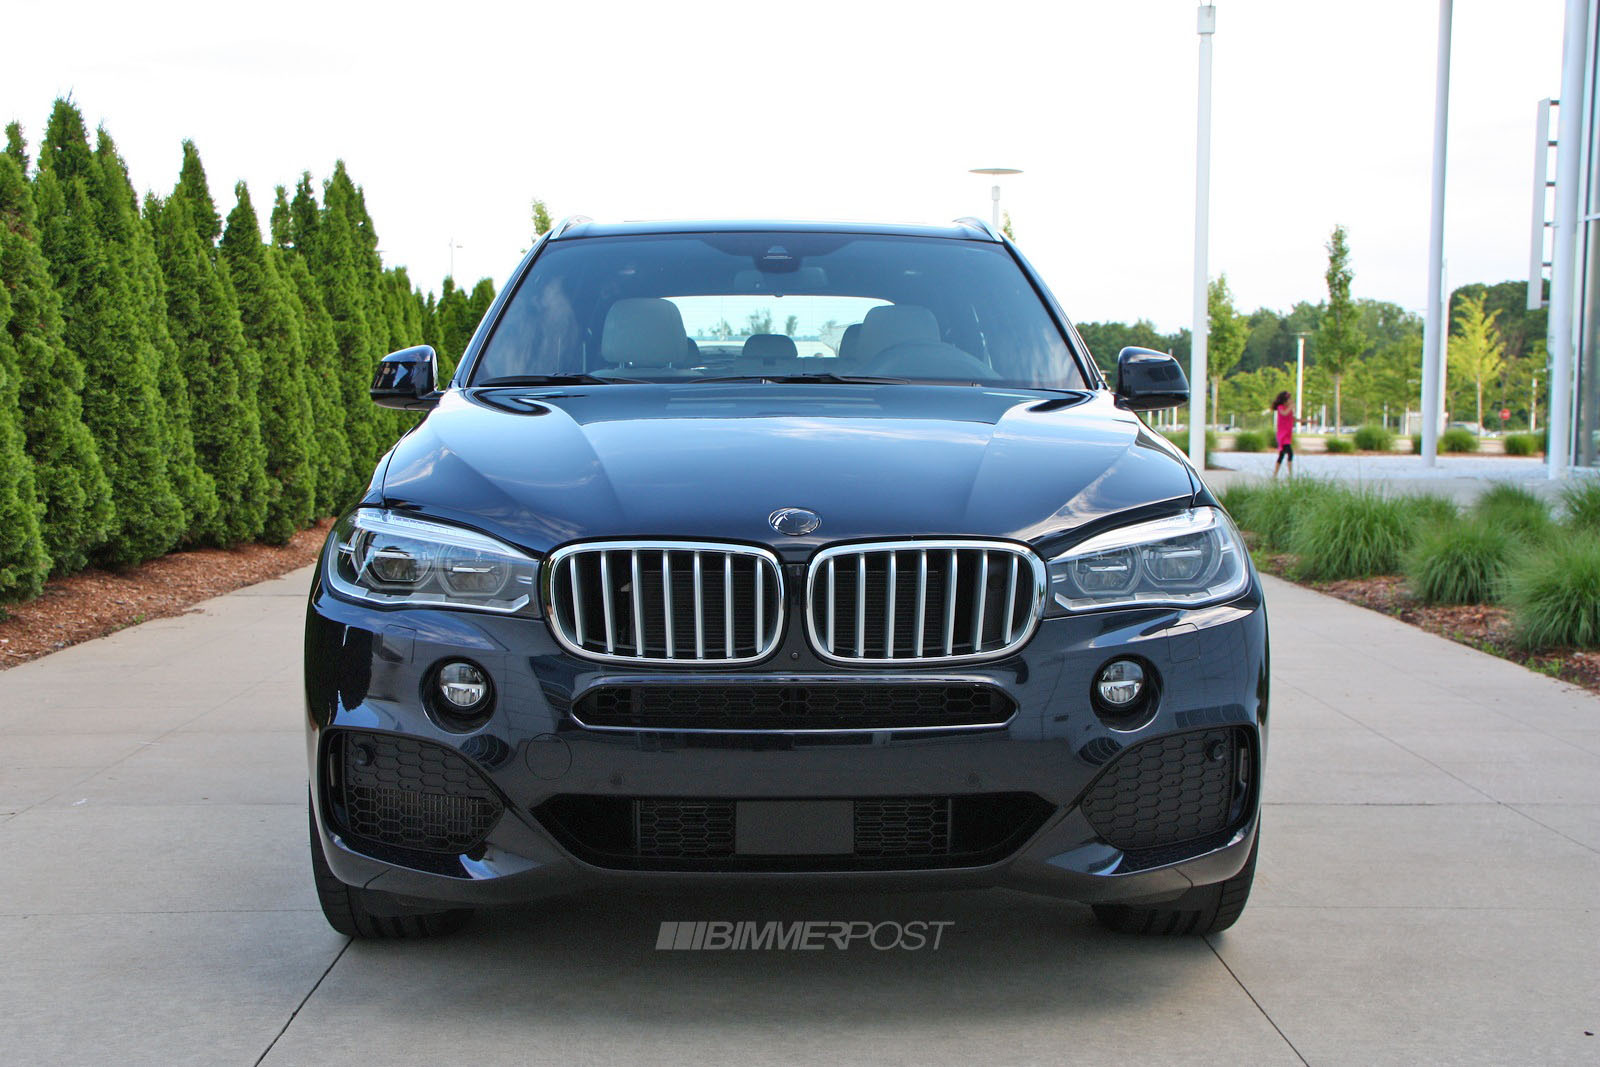 have a look at the 2014 bmw x5 xdrive50i m sport   motoroids